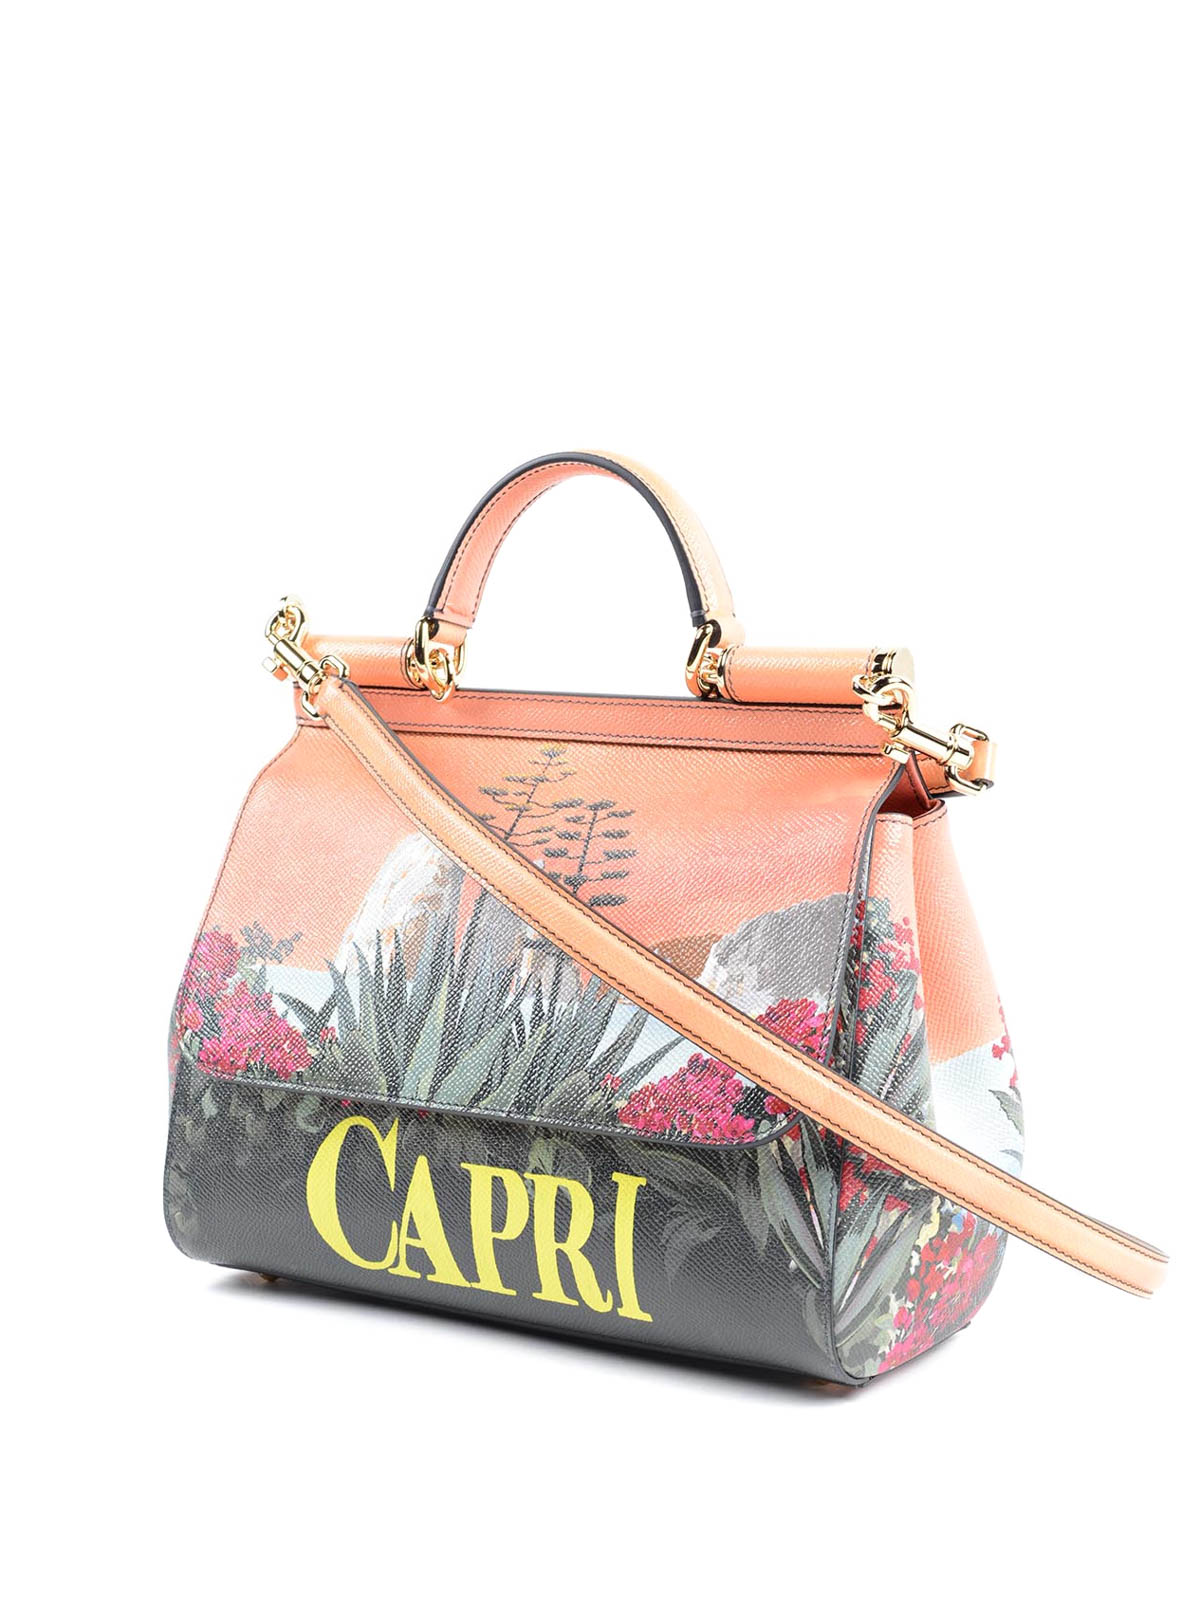 DOLCE   GABBANA  totes bags online - Sicily Capri printed leather bag ac418bba40610